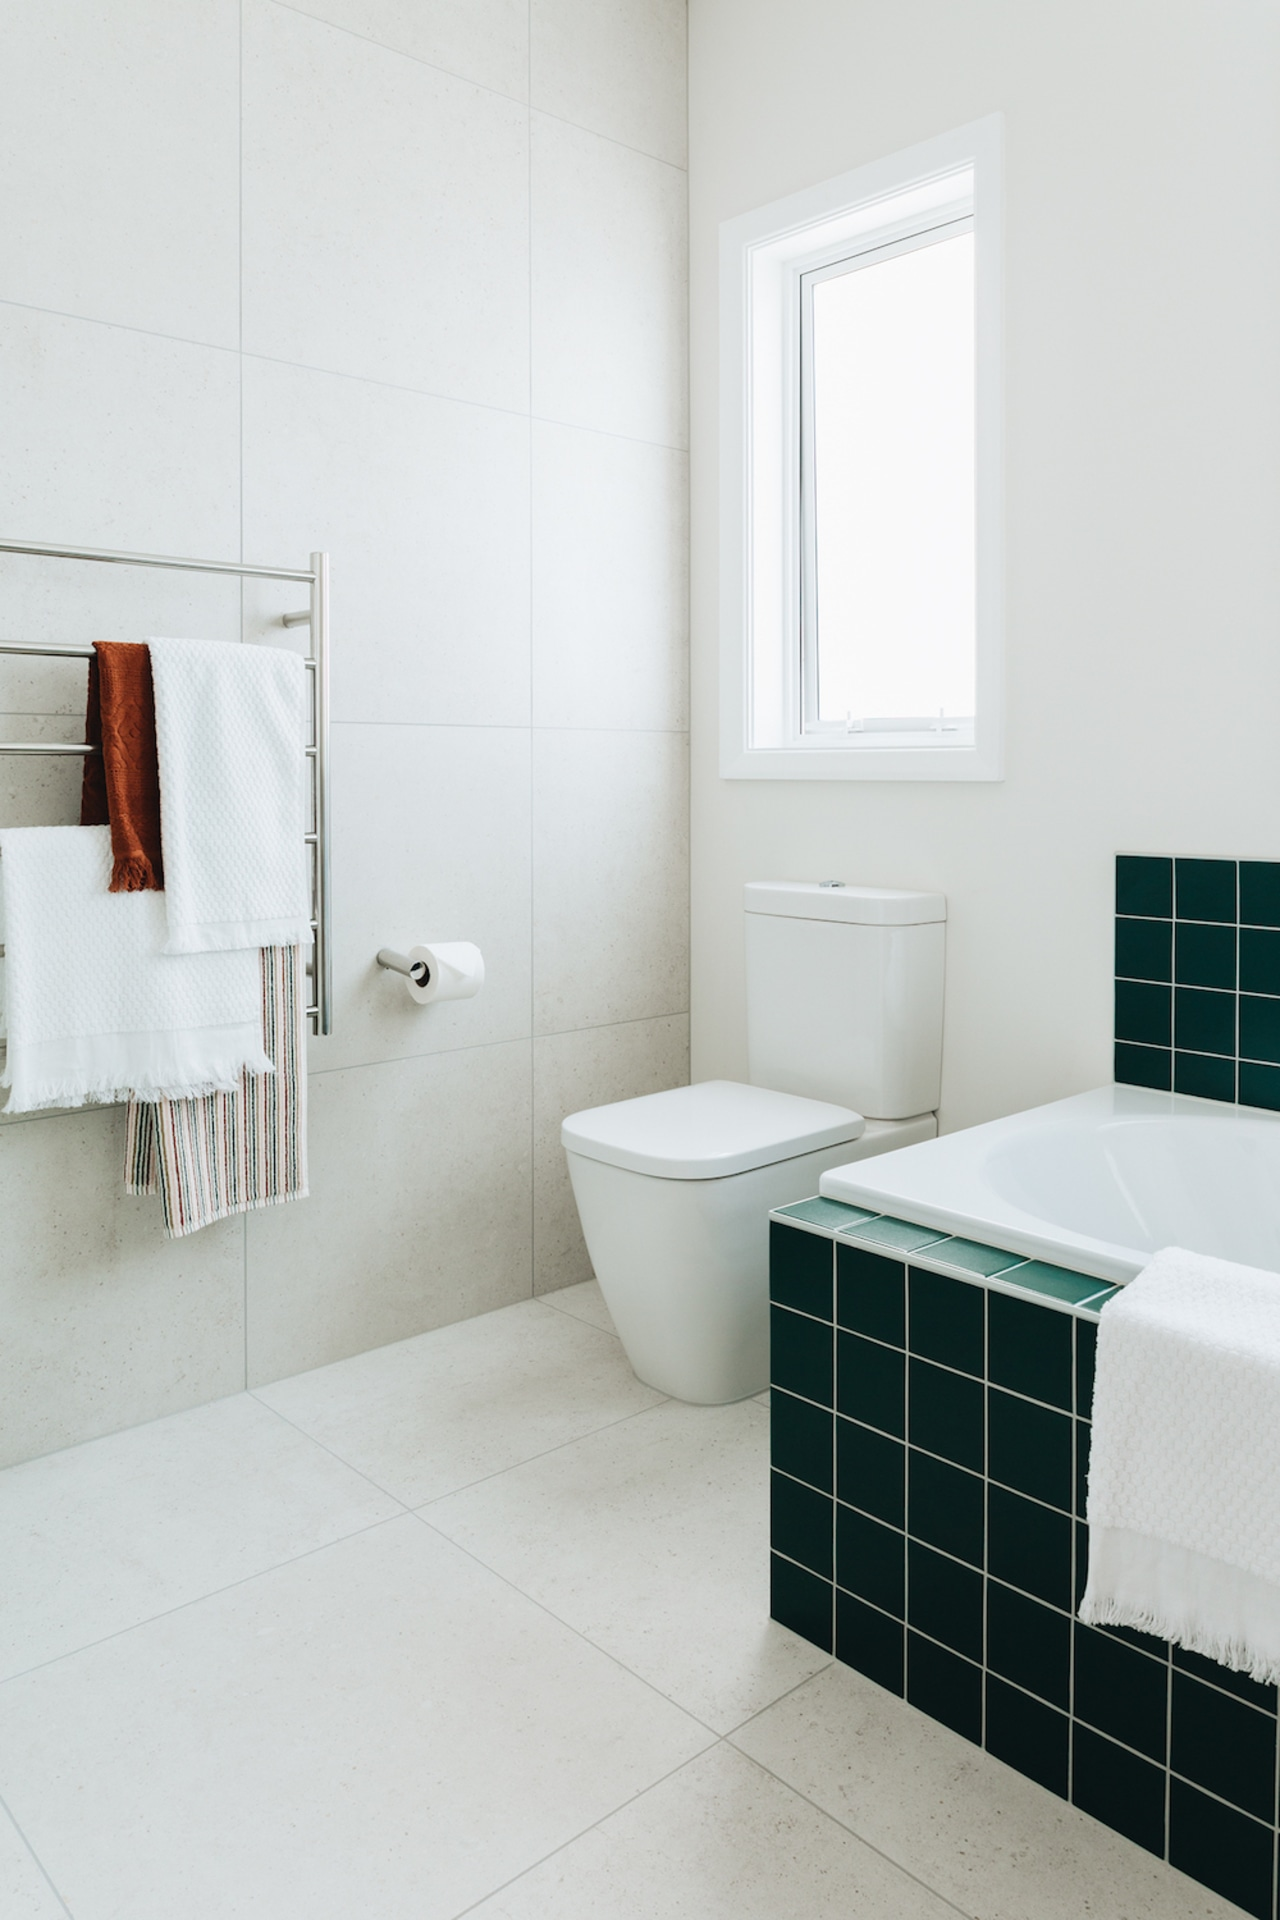 Large format white wall and floor tiles provide